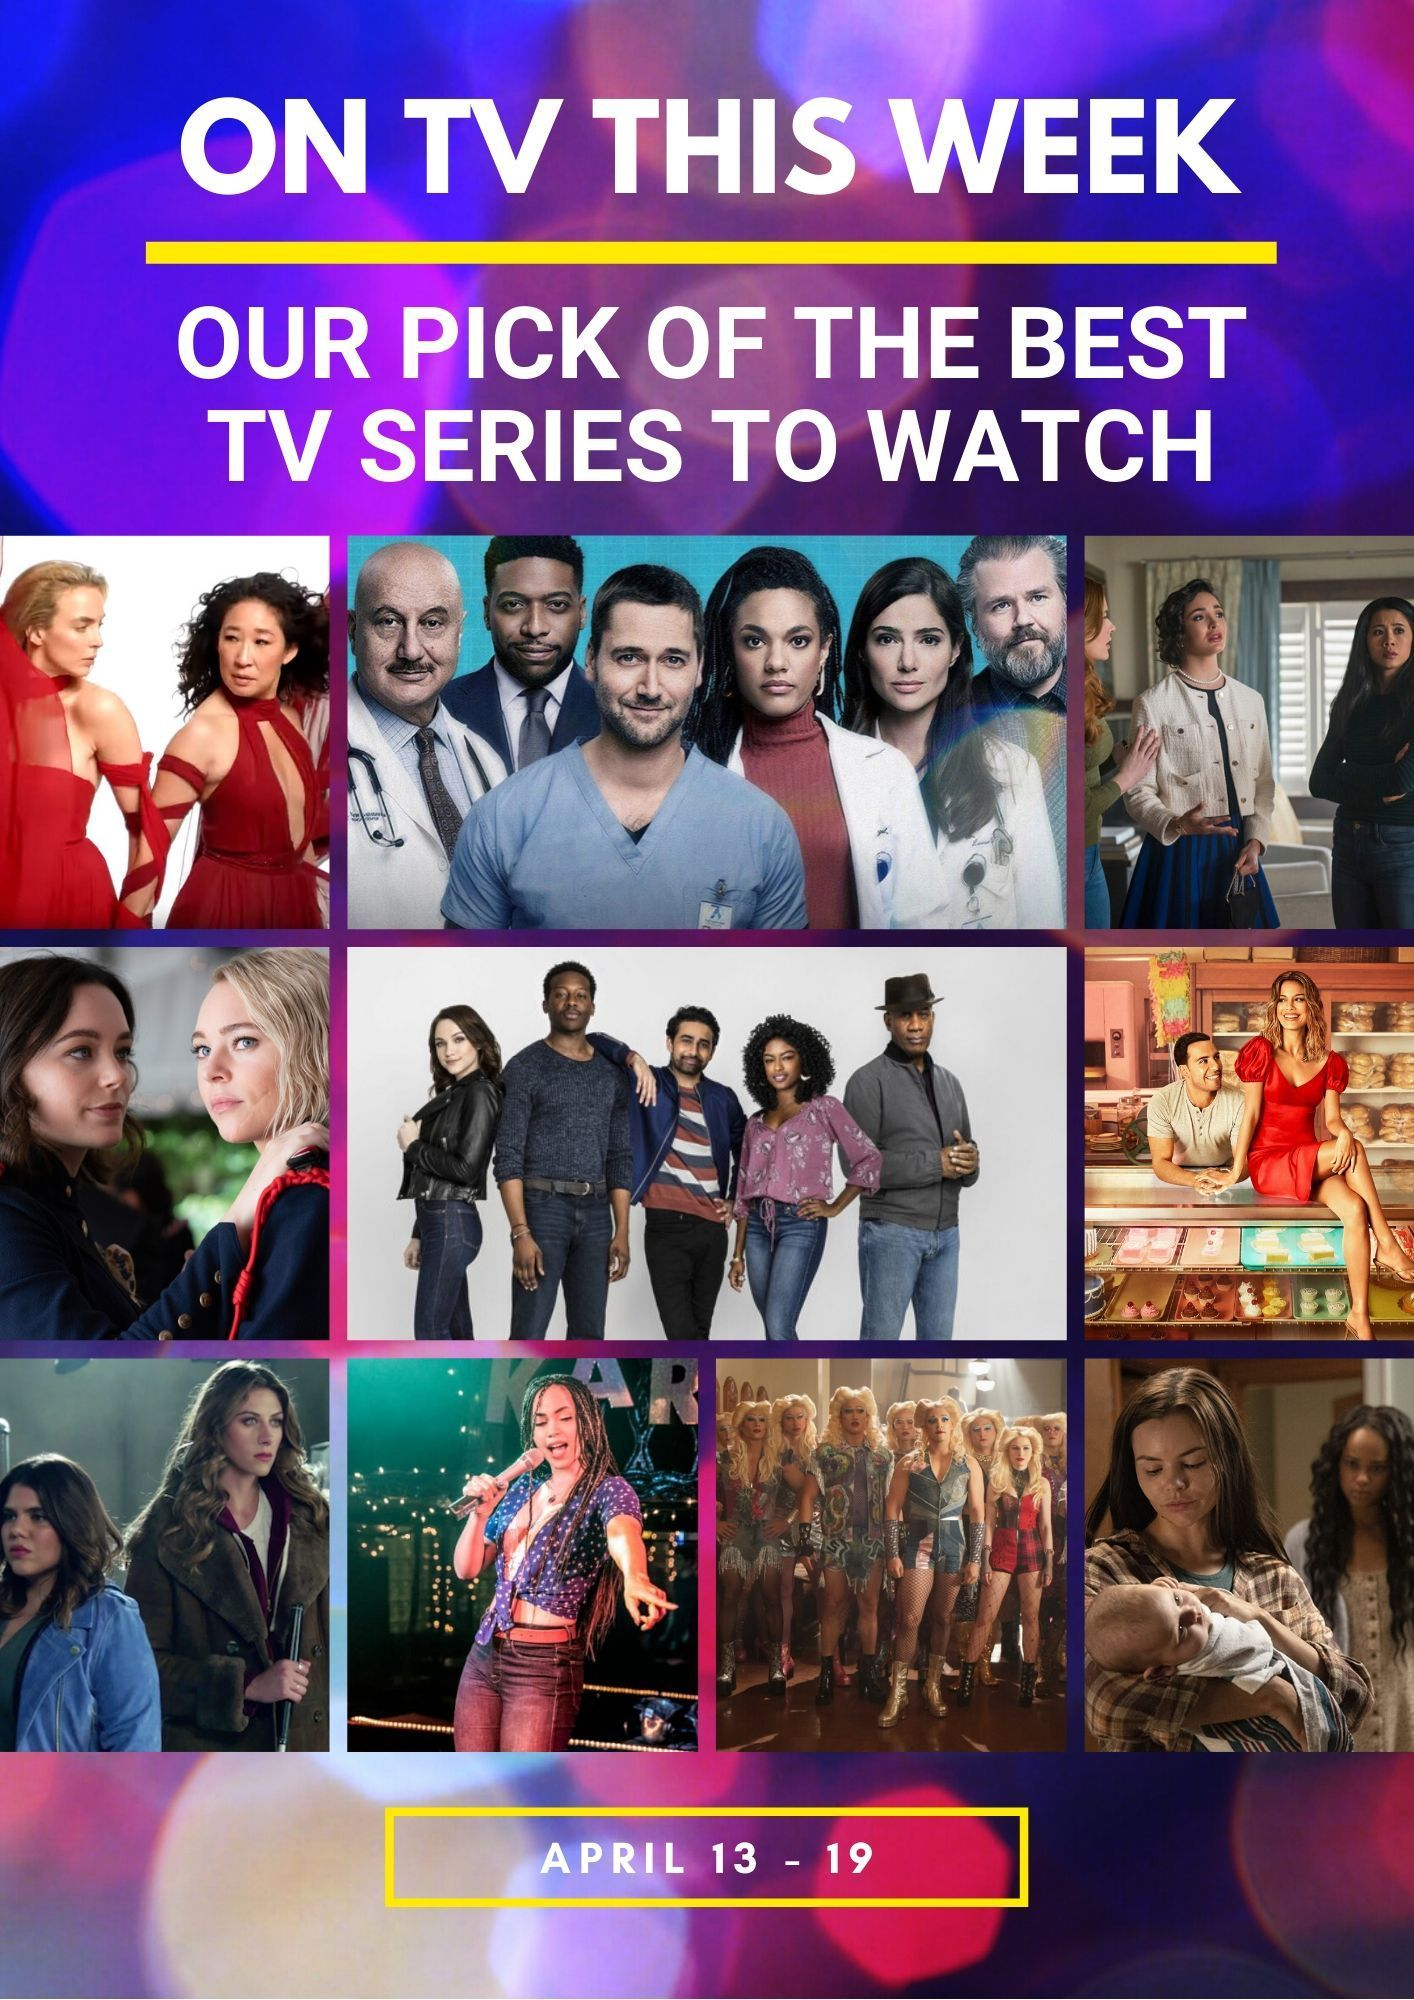 Pin on WHAT TO WATCH Best TV Shows on TV, Netflix, Hulu